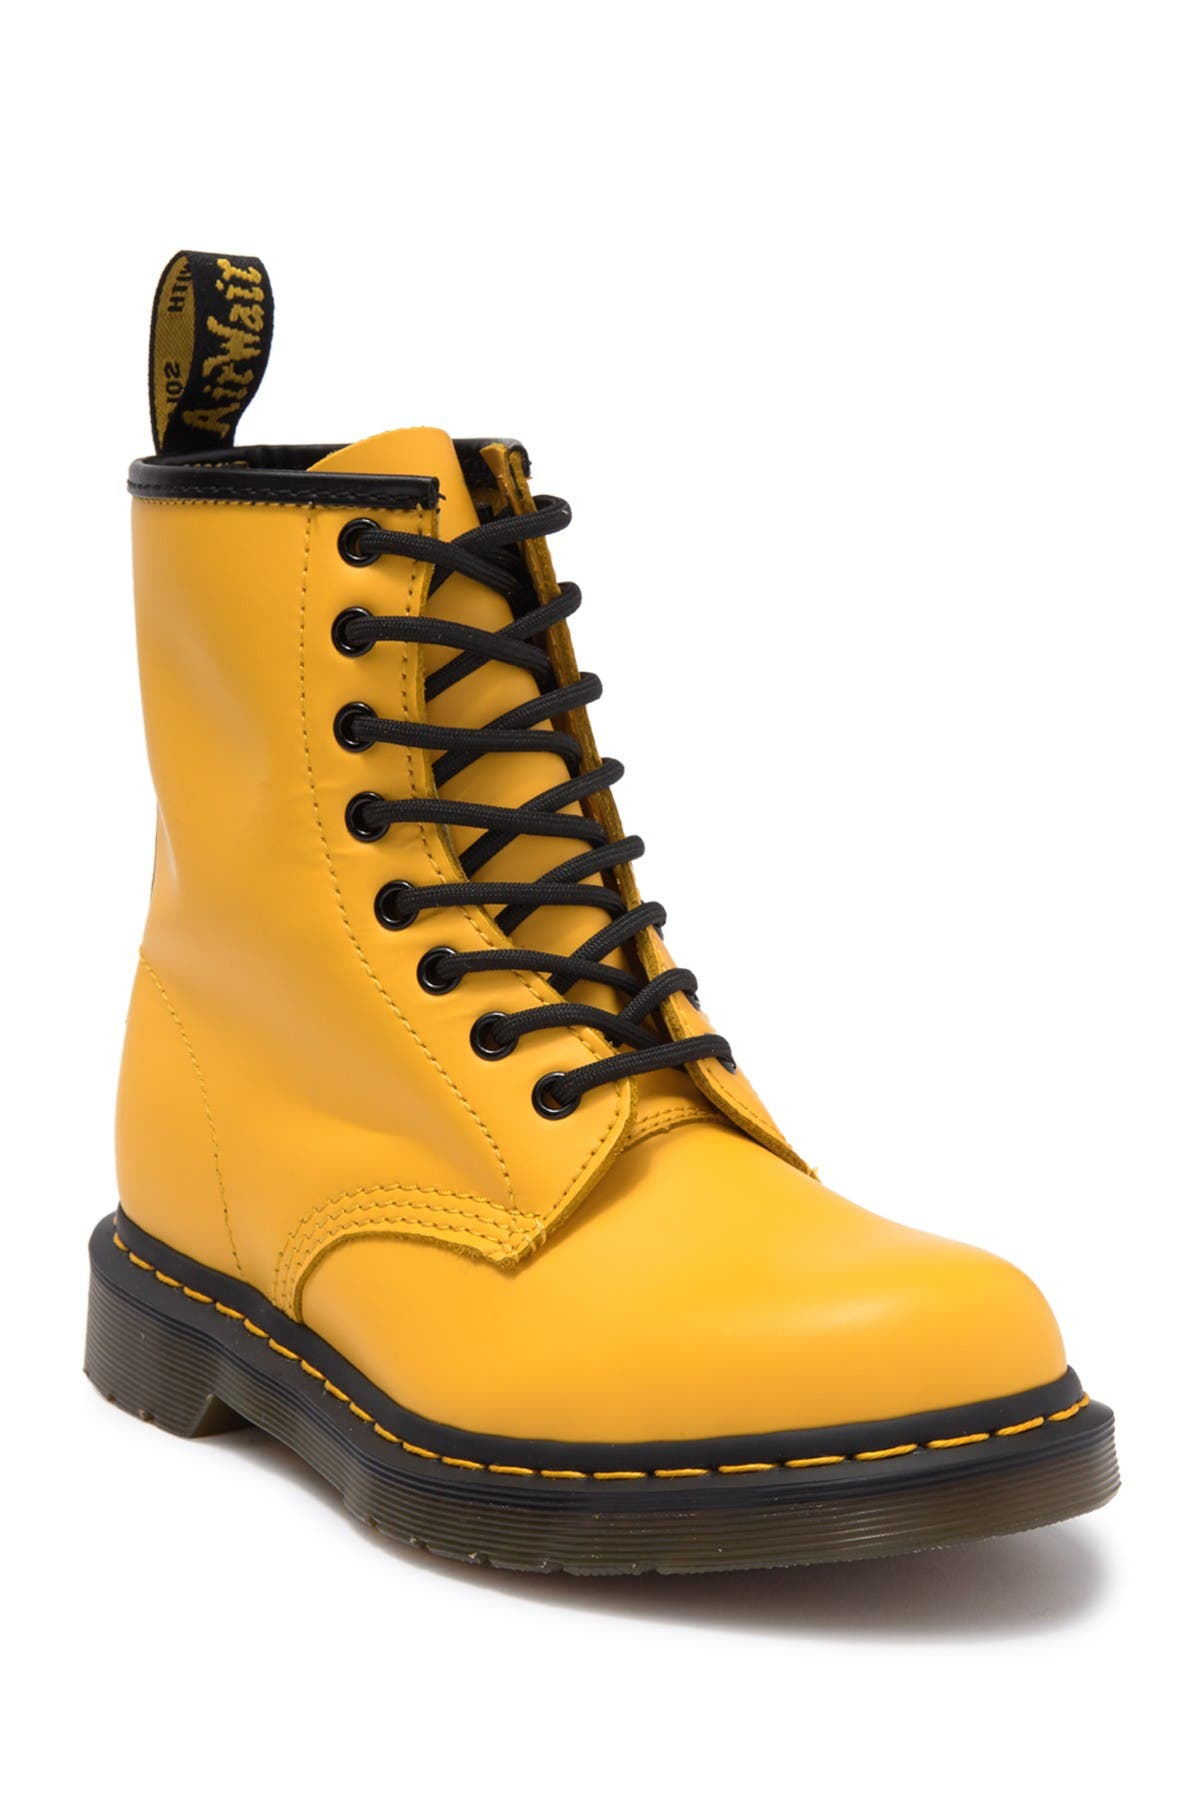 Image of Dr. Martens 1460 8-Eye Lace Up Boot